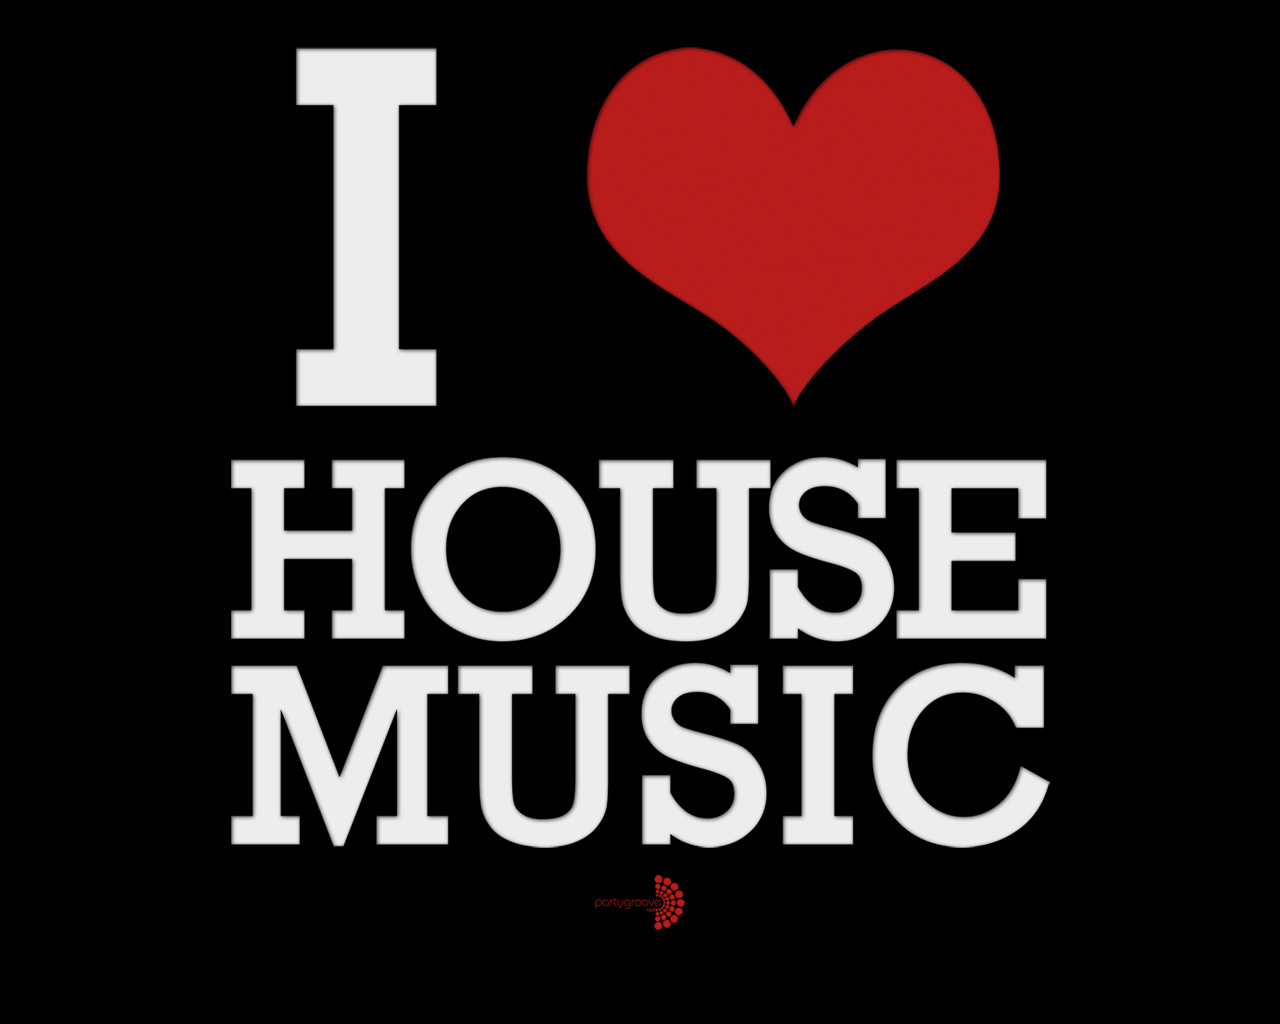 lorenzopino top 10 house music song 2010 ForFamous House Music